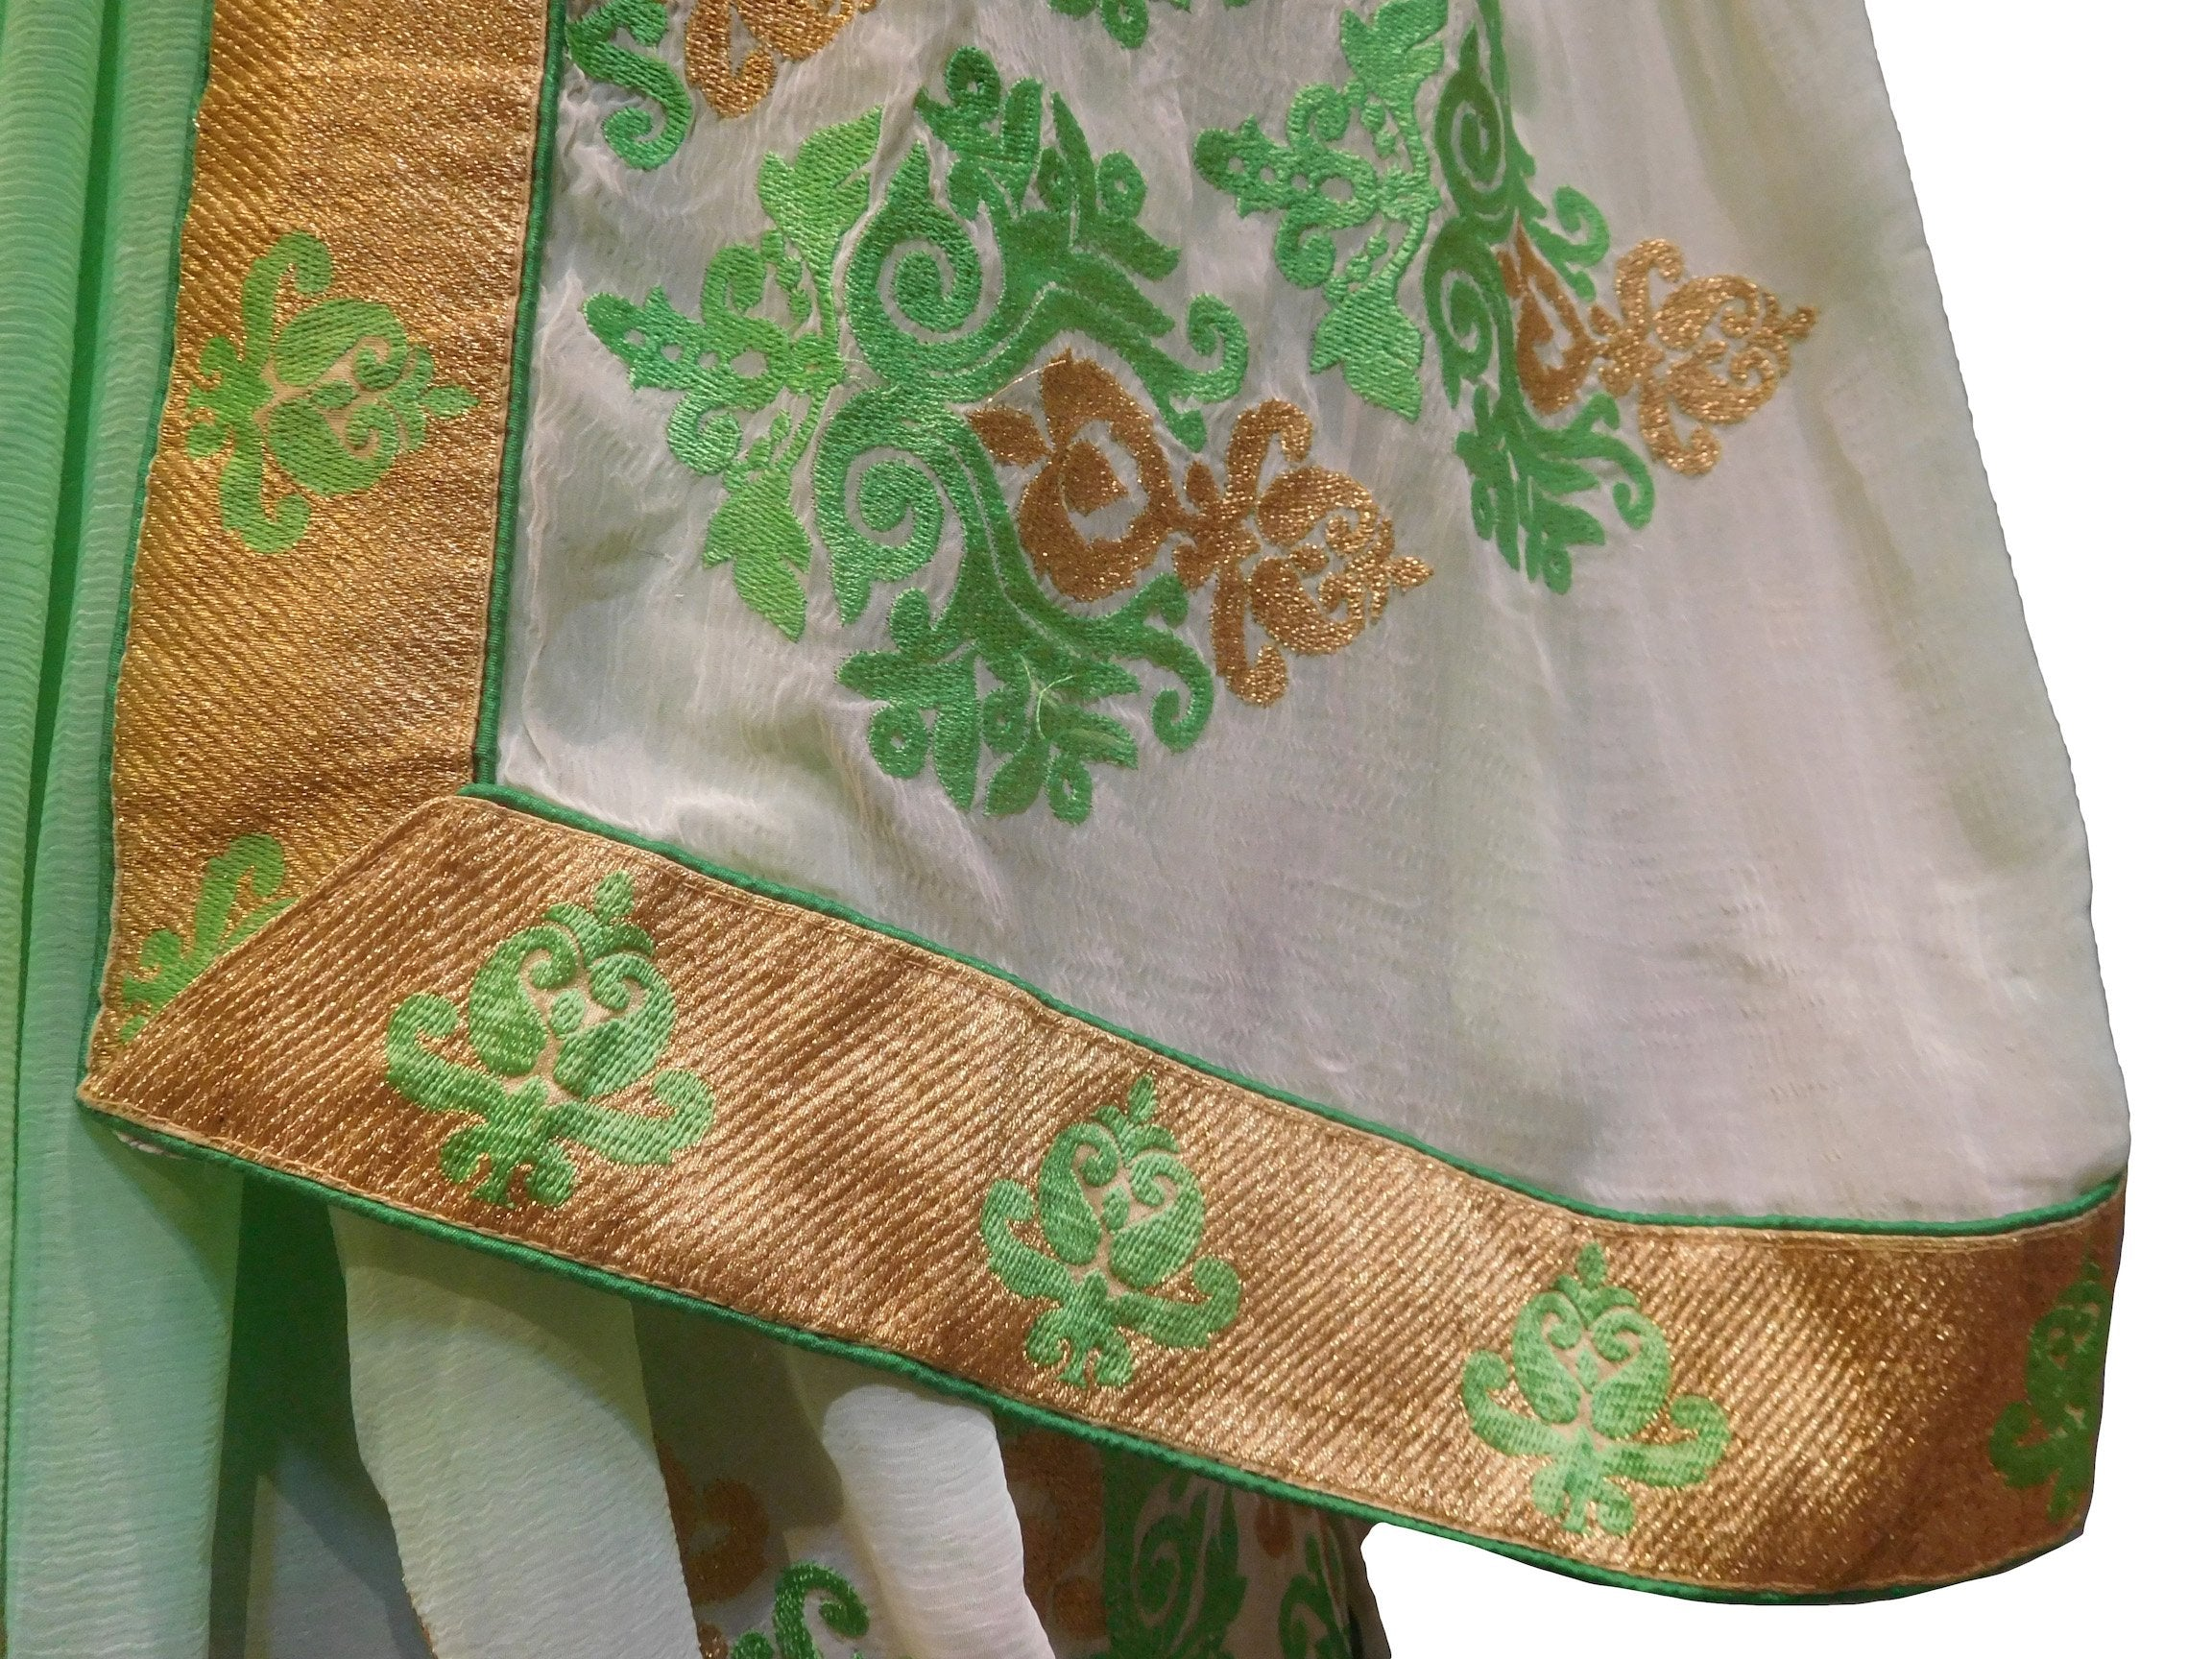 SMSAREE Green & Cream Designer Wedding Partywear Chiffon Thread & Zari Hand Embroidery Work Bridal Saree Sari With Blouse Piece F495